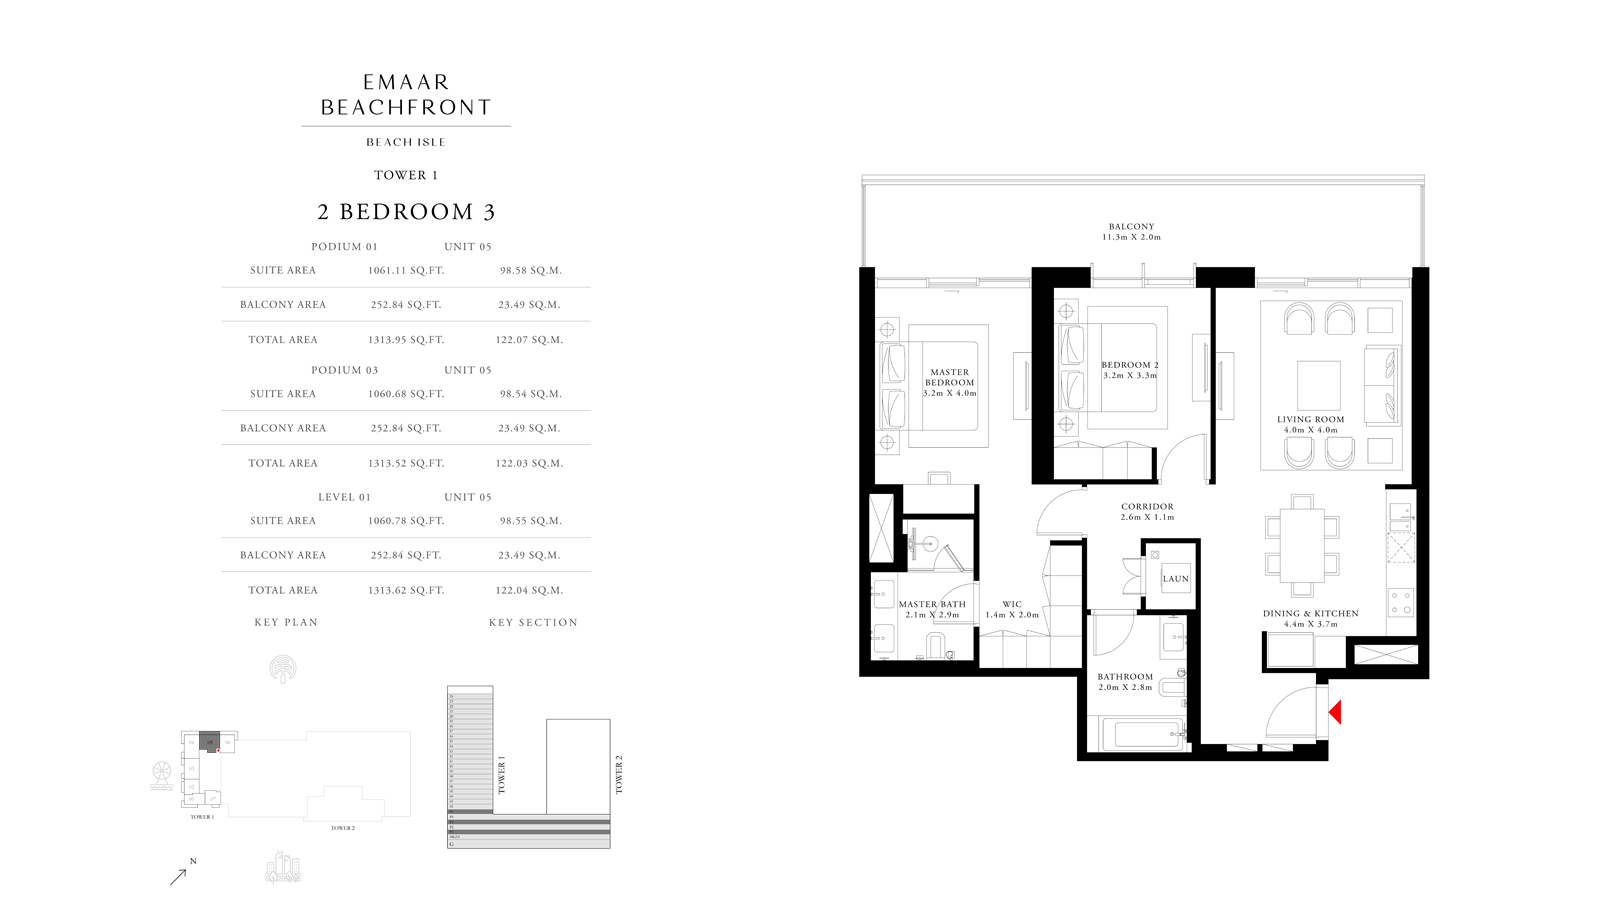 2 Bedroom 3 Tower 1, Size 1313 sq ft